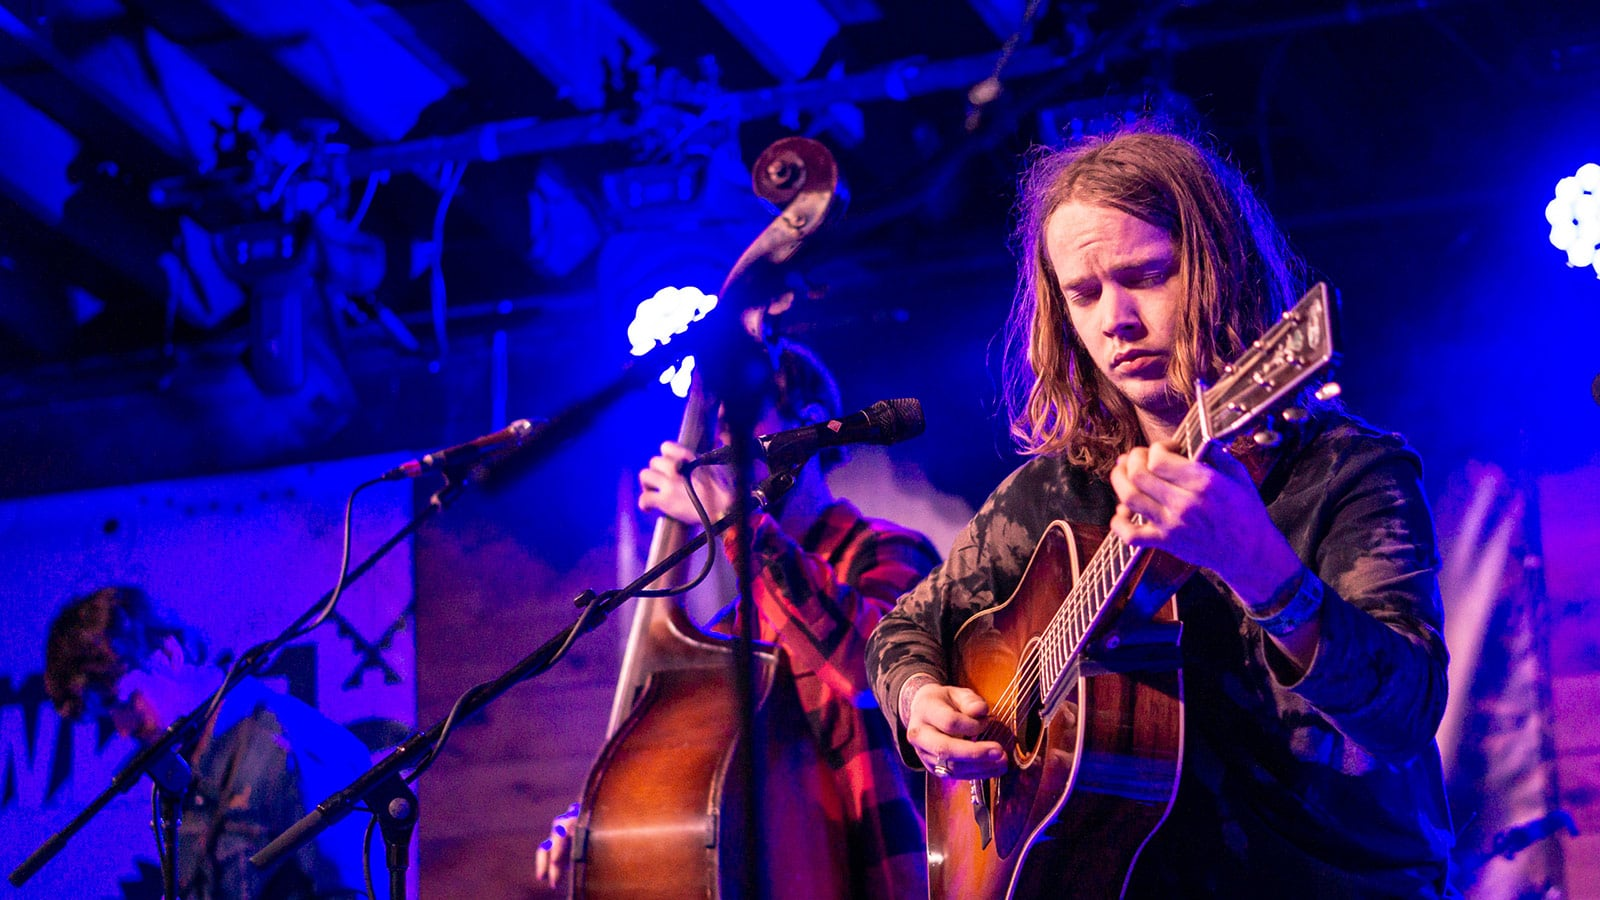 Billy Strings Performing at the Brooklyn Bowl Family Reunion